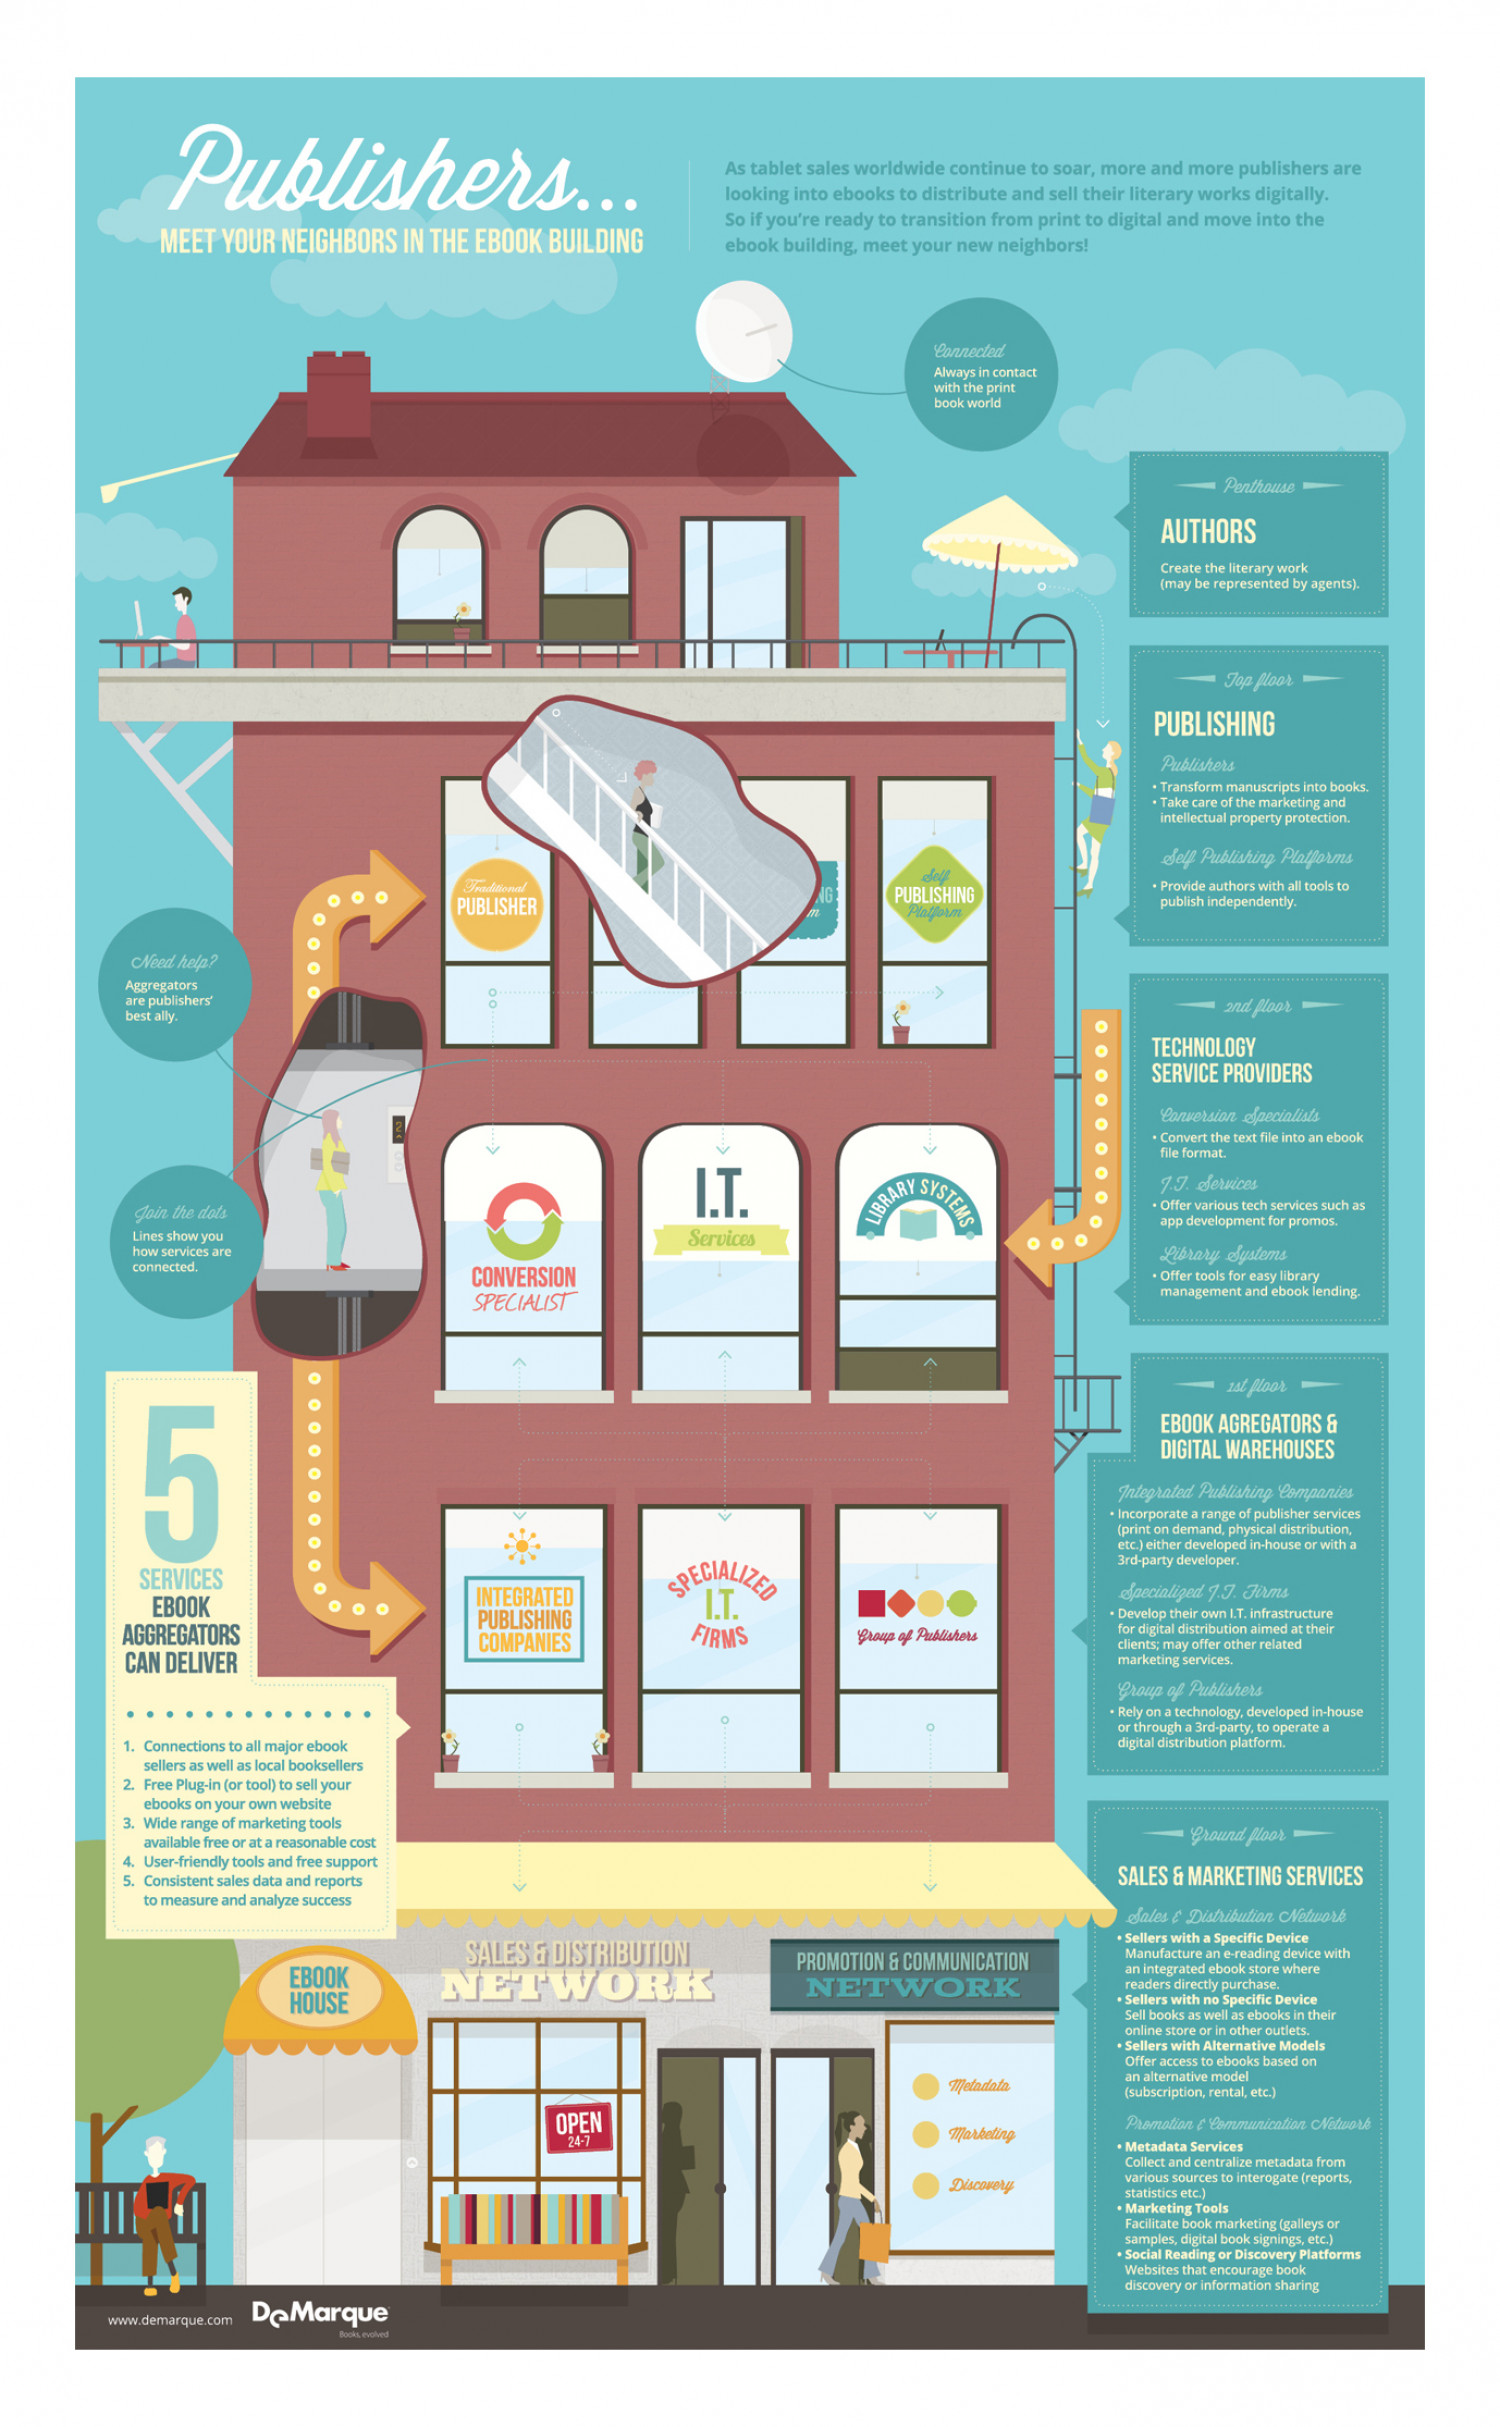 Publishers... Meet your neighbors in the ebook building Infographic